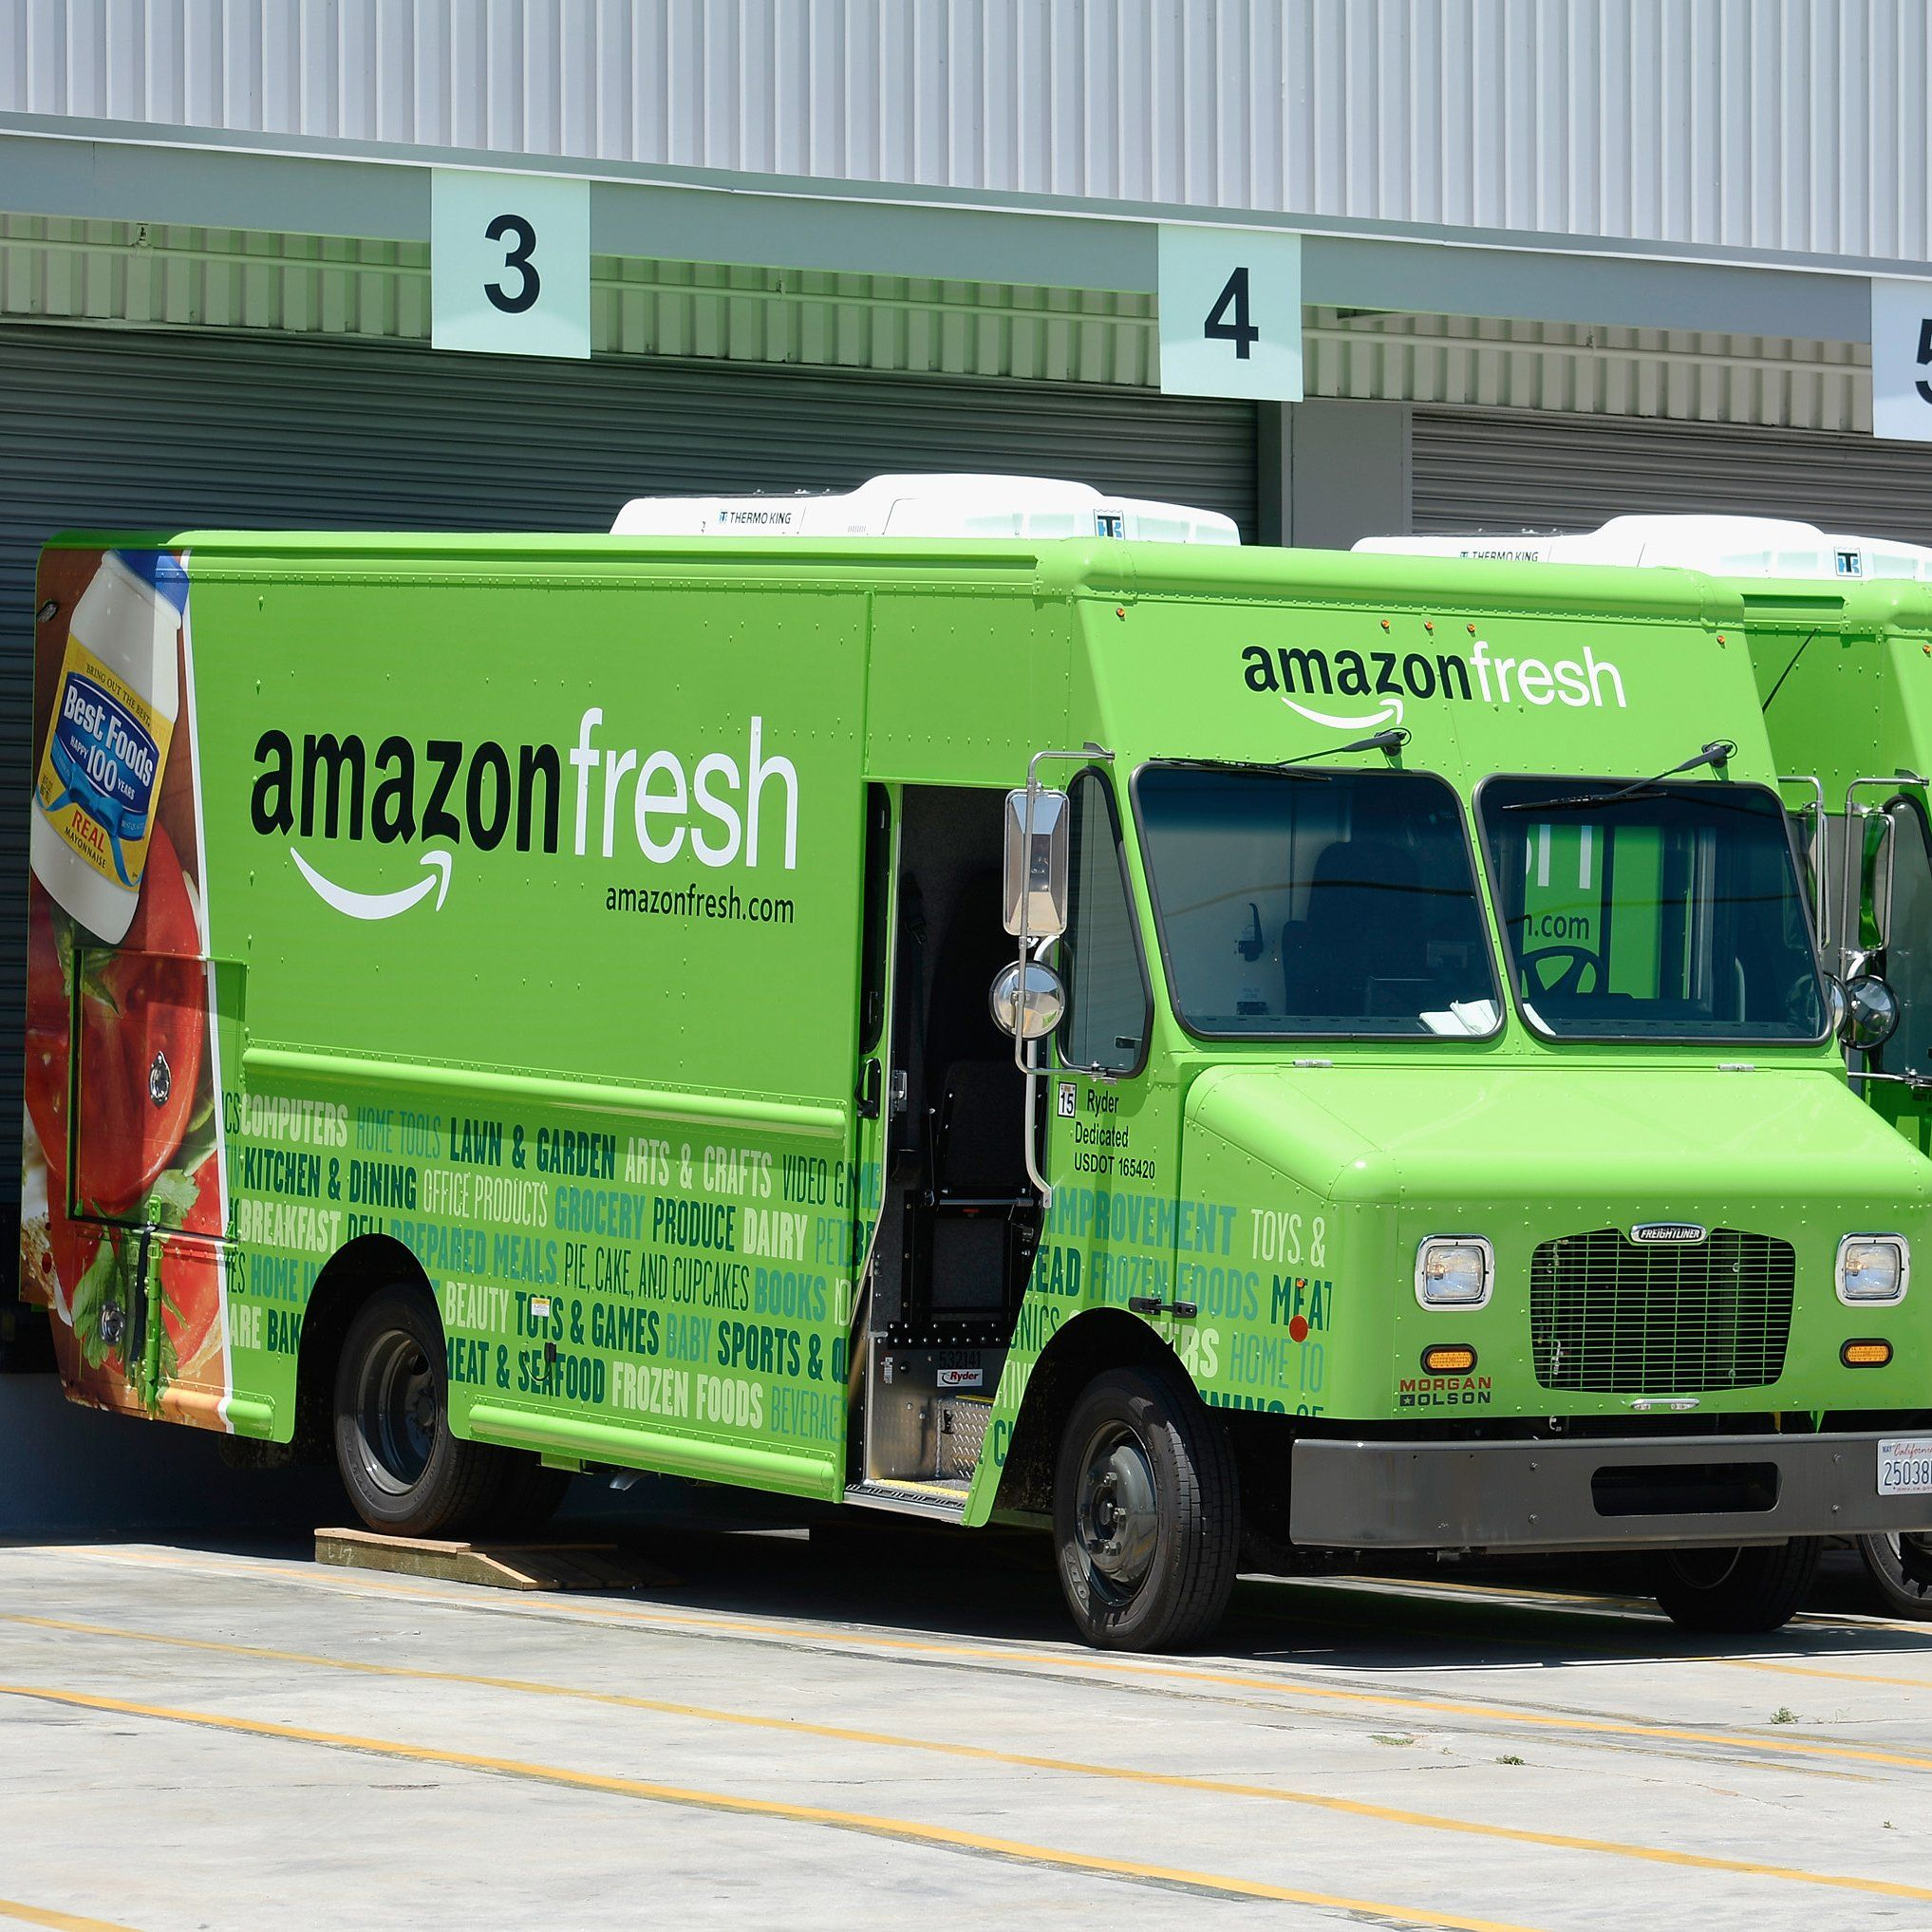 Amazon's New Grocery Line Will Give Trader Joe's a Run For